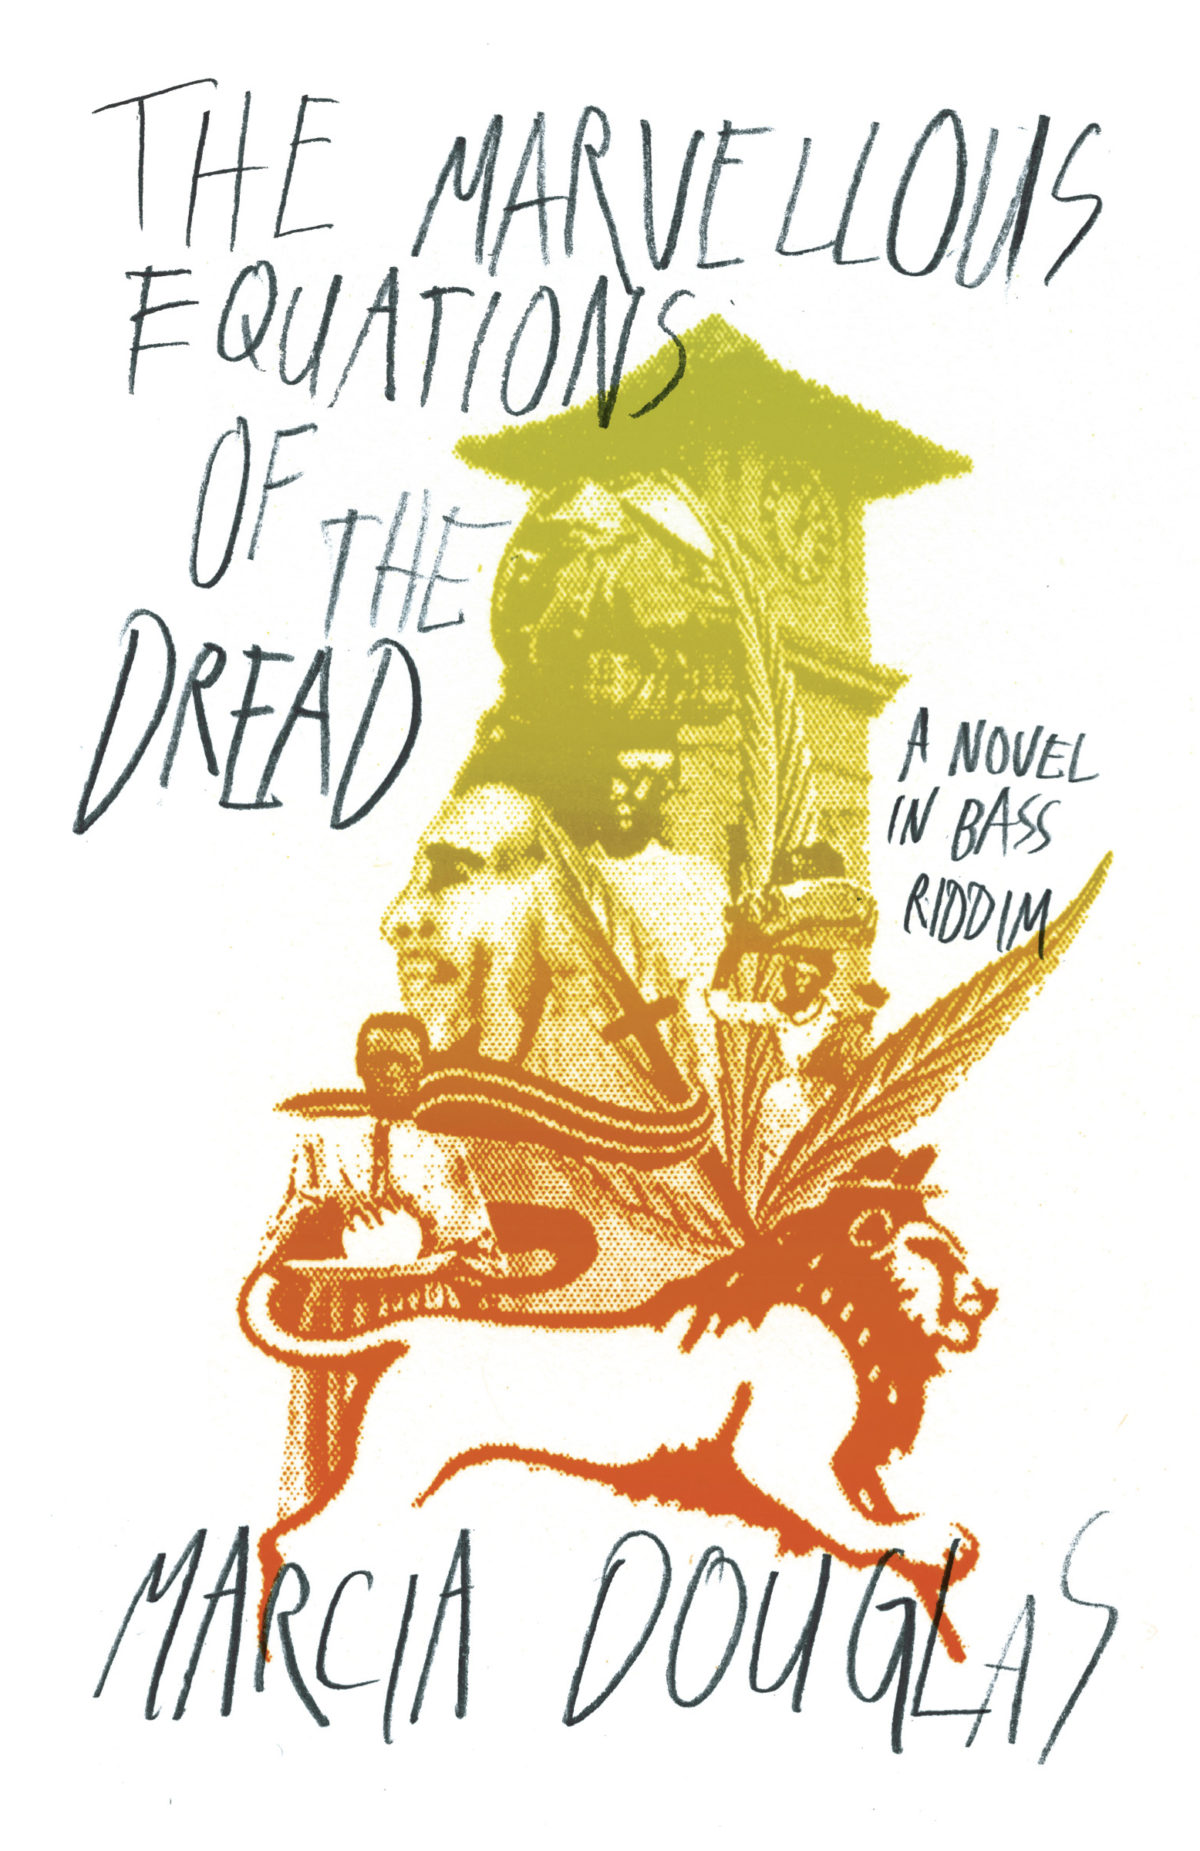 A Review of: The Marvellous Equations of the Dread by Marcia Douglas